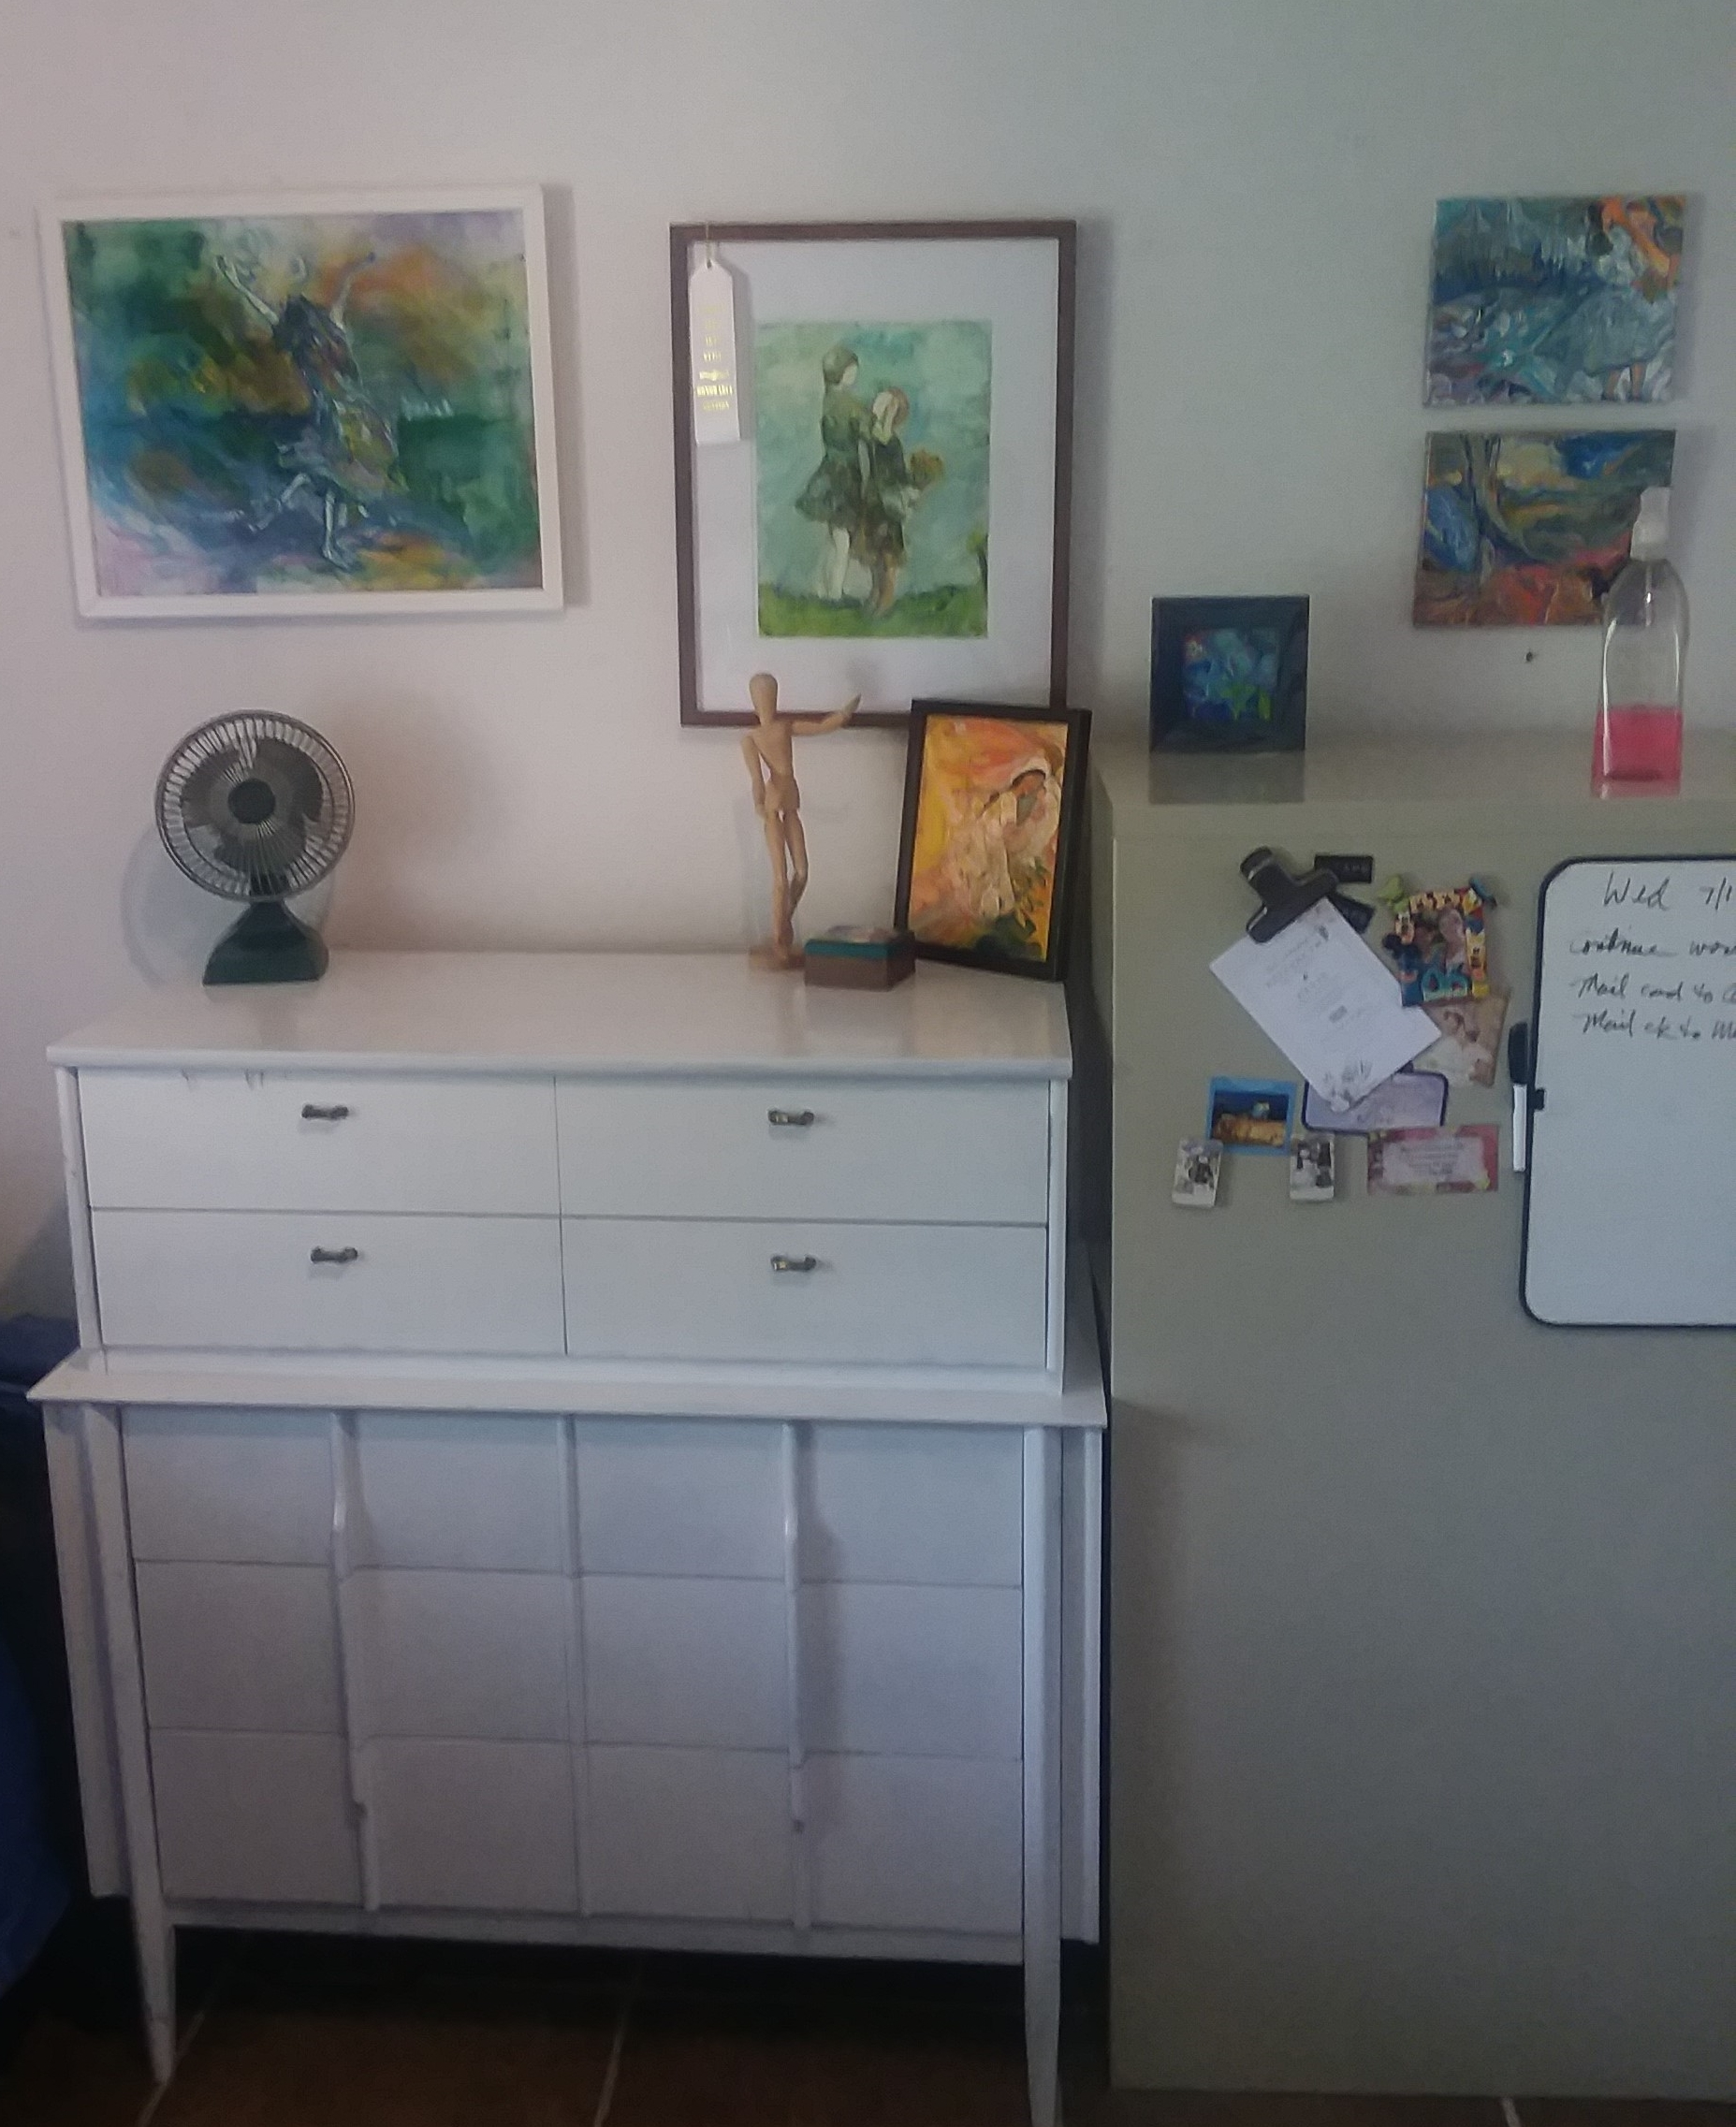 The dresser was purchased for $6 at a local thrift store and painted white. I now keep prints, and unframed paintings there along with a few other items.